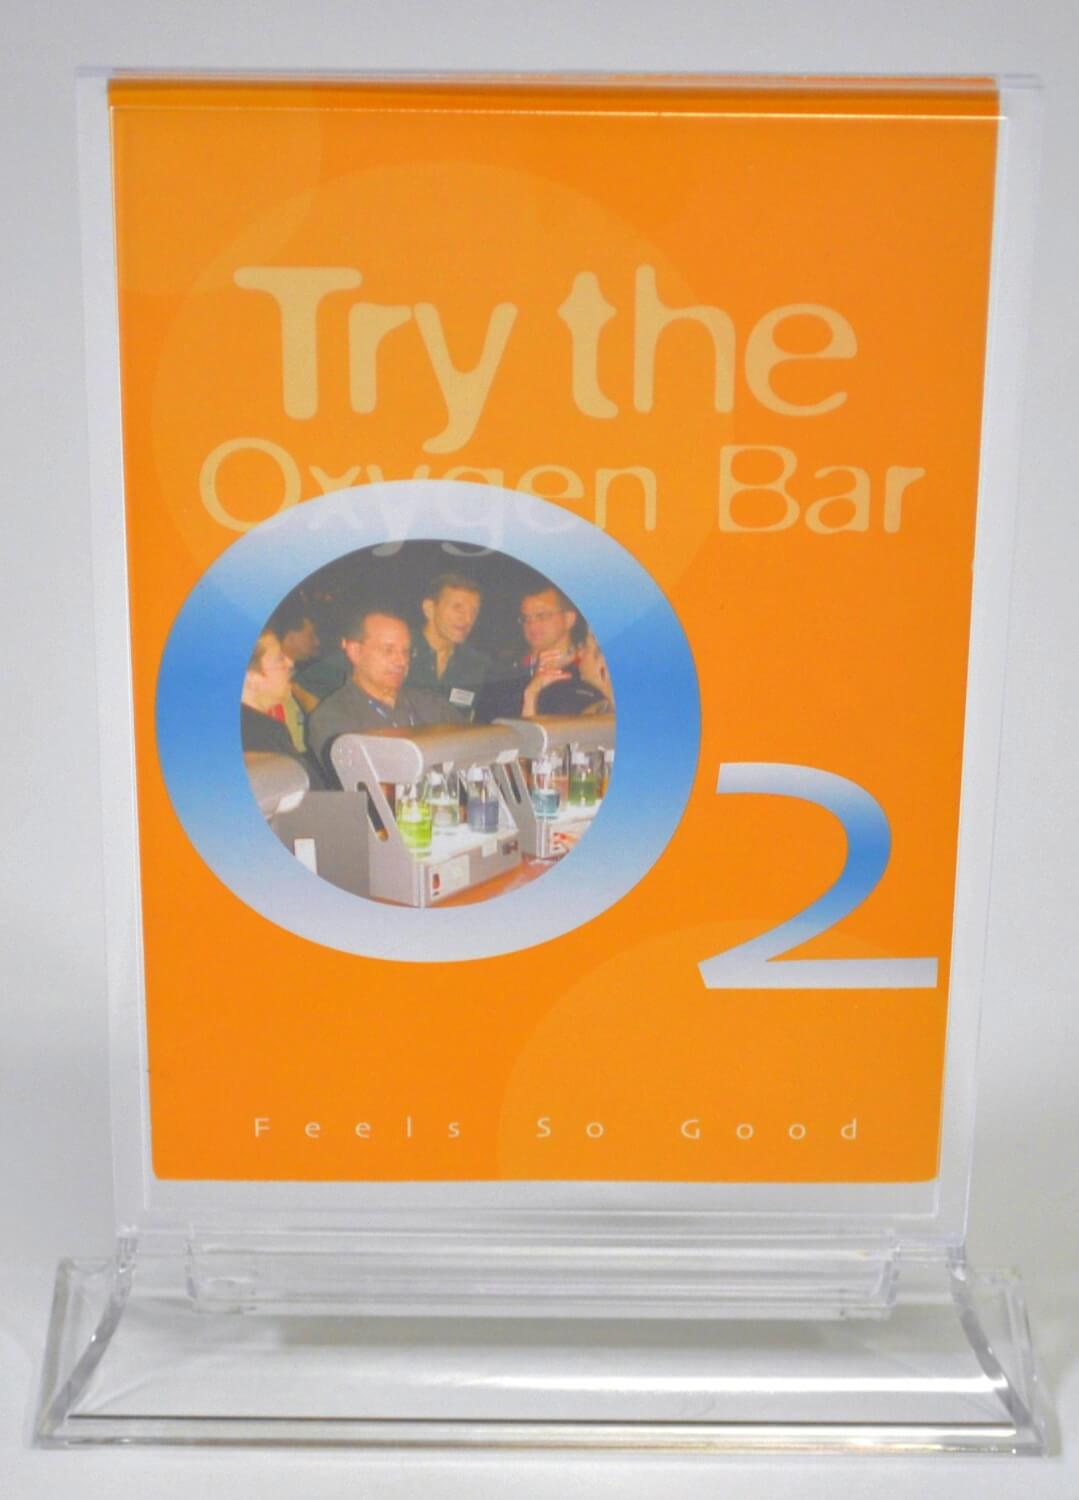 Try the Oxygen Bar Table Top Display